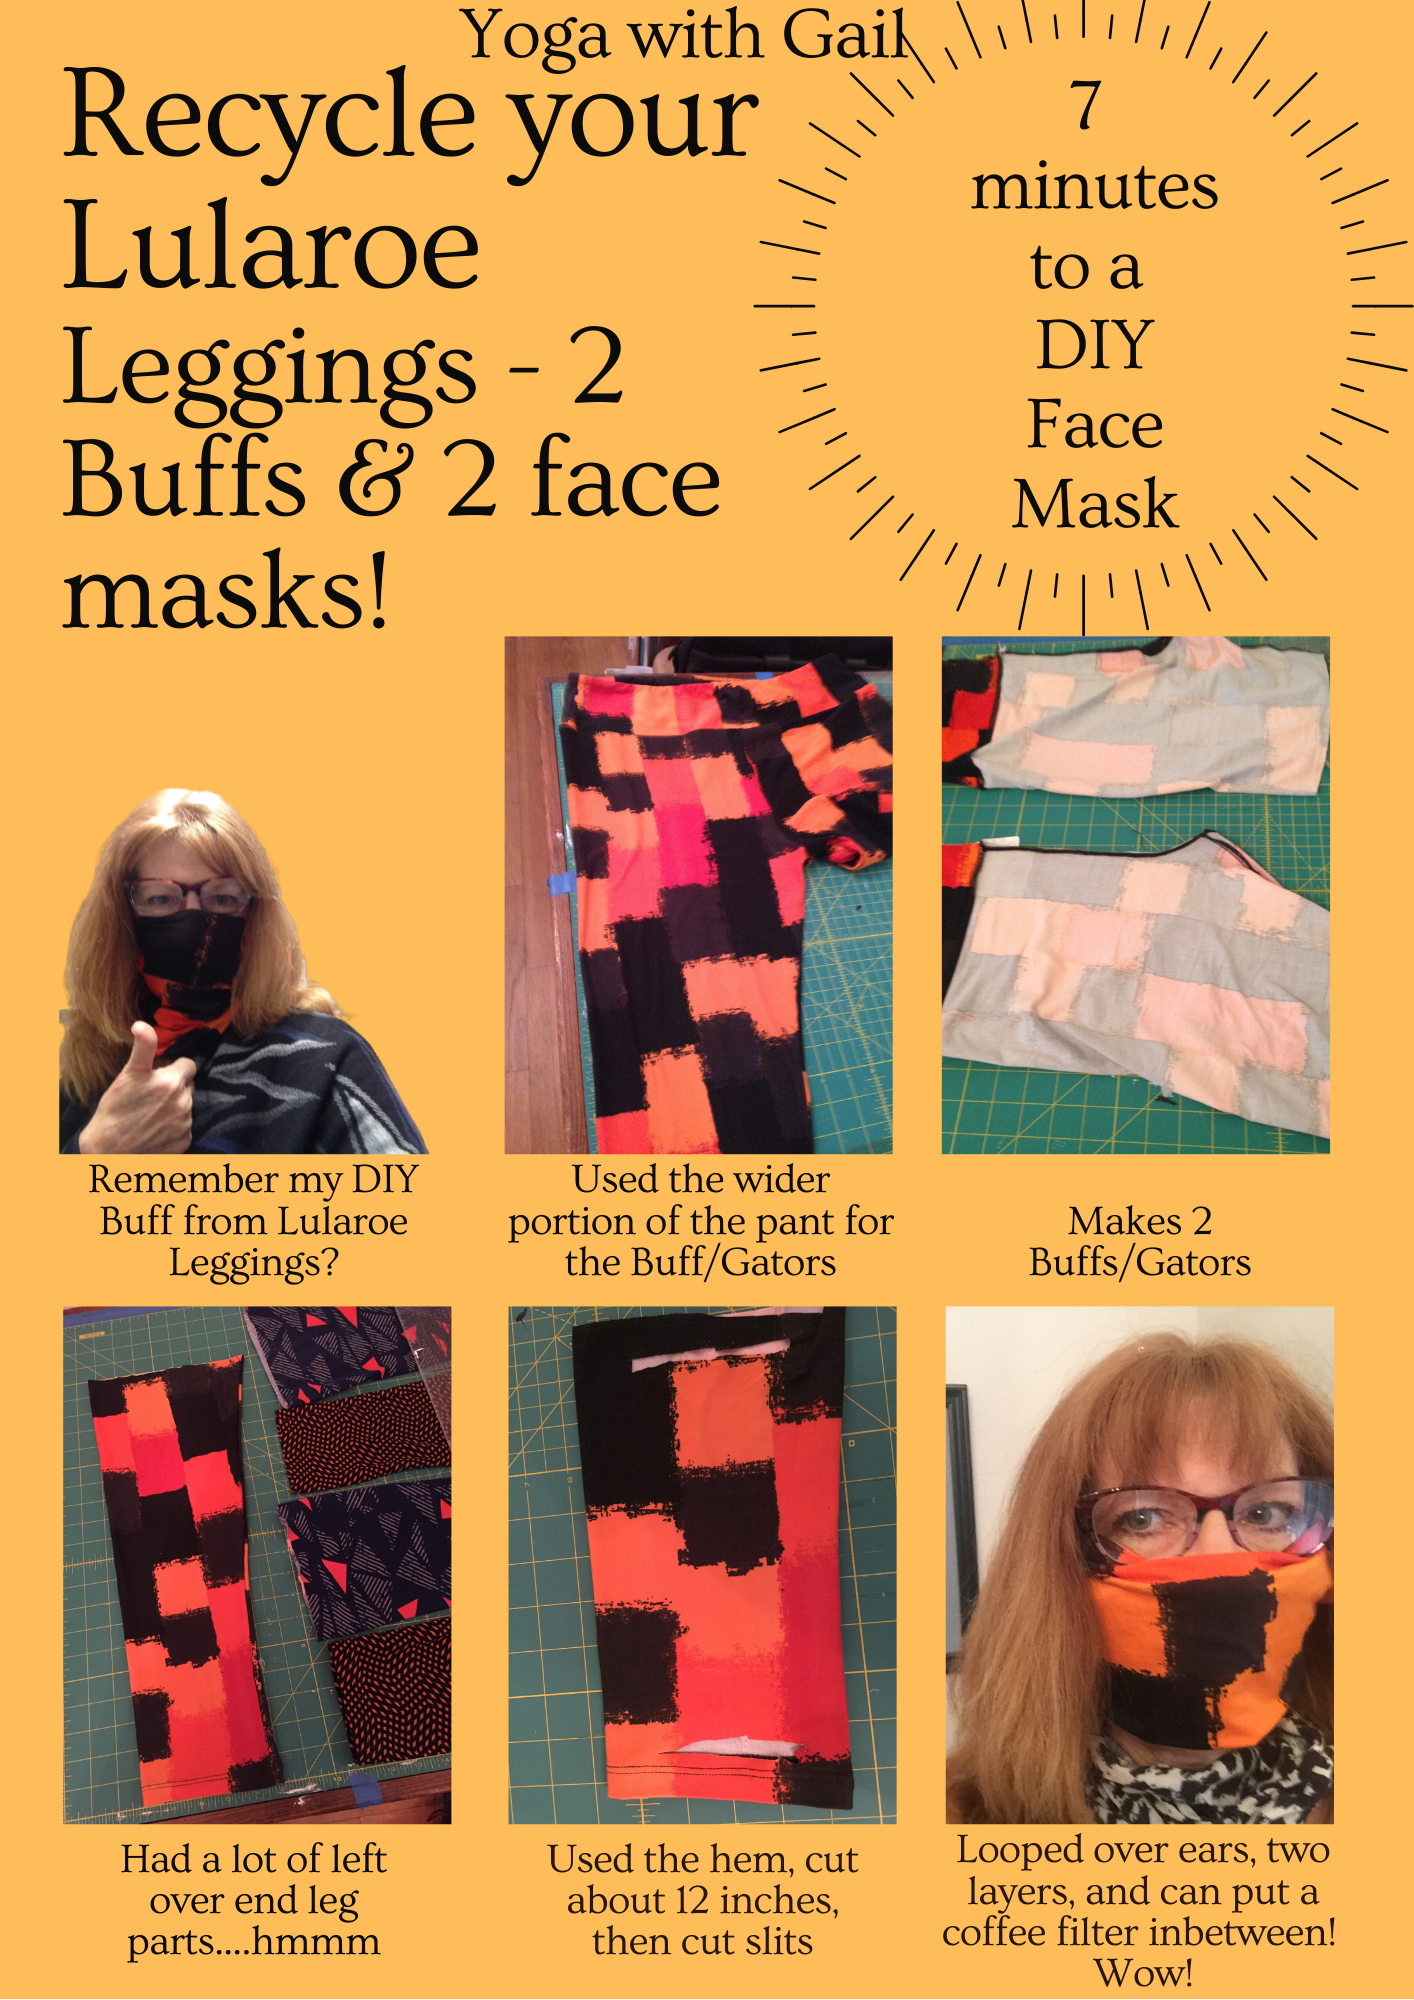 DIY Lularoe Leggings into face mask #2